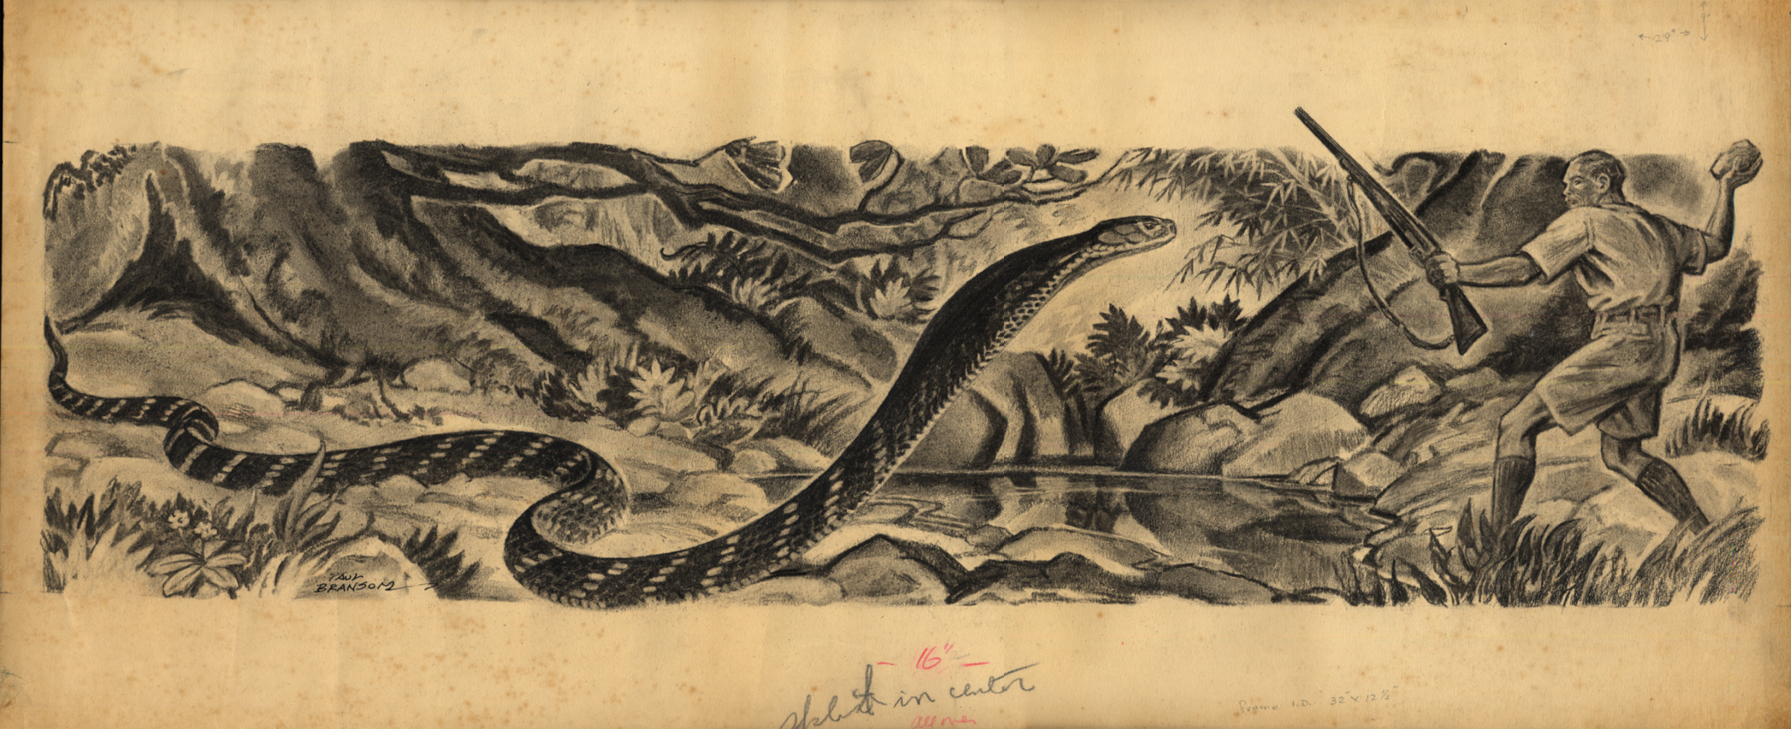 Man with rifle & rock battles a king cobra: print by Paul Bransom; undated